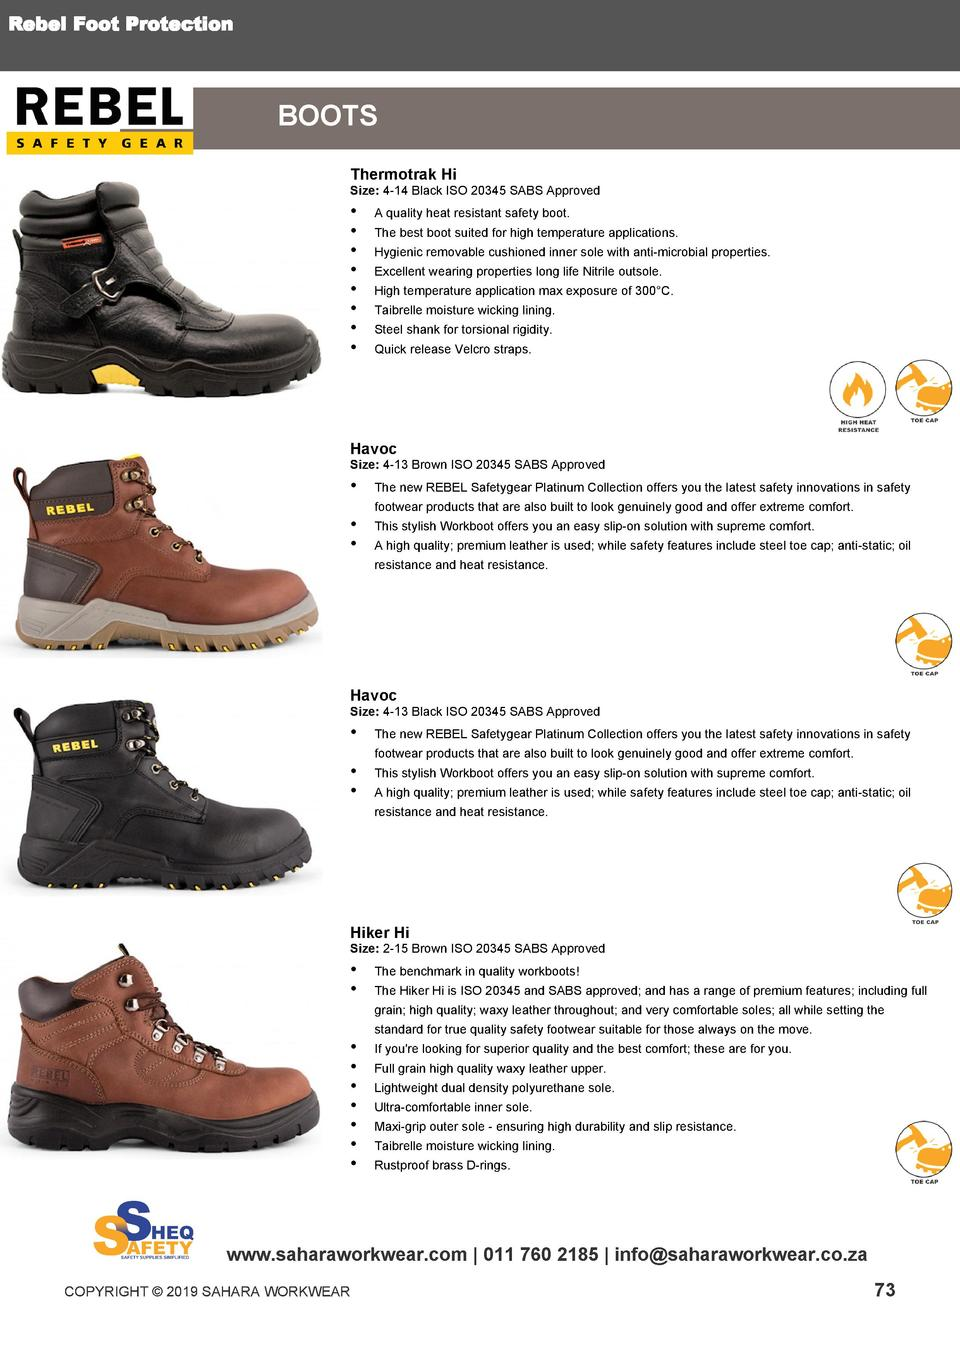 e88e7545fe Rebel Foot Protection BOOTS Thermotrak Hi Size 4-14 Black ISO 20345 SABS  Approved .